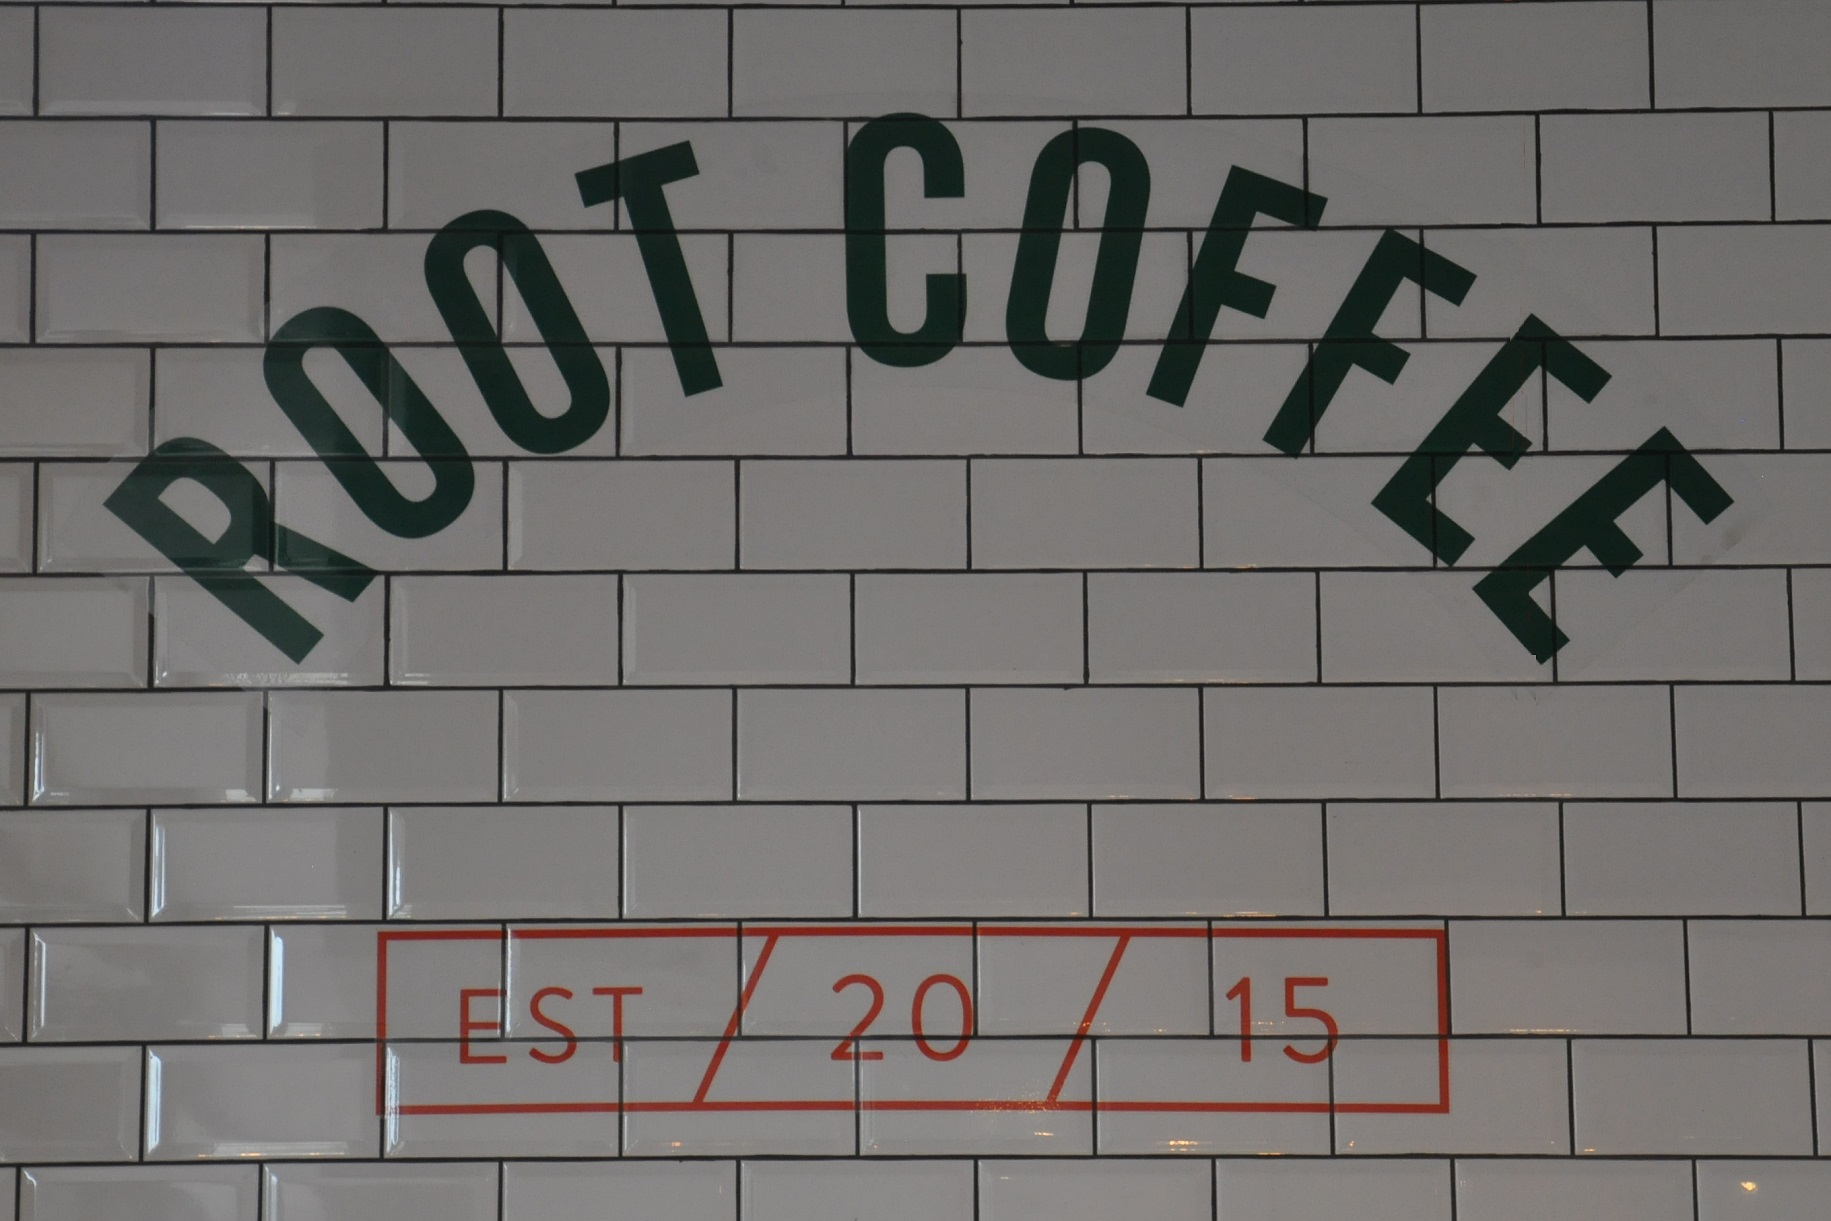 "The words ""Root Coffee"" written in an arch in black capitals on white, tiled wall. ""EST / 20 / 15"" is written in red in a box below."